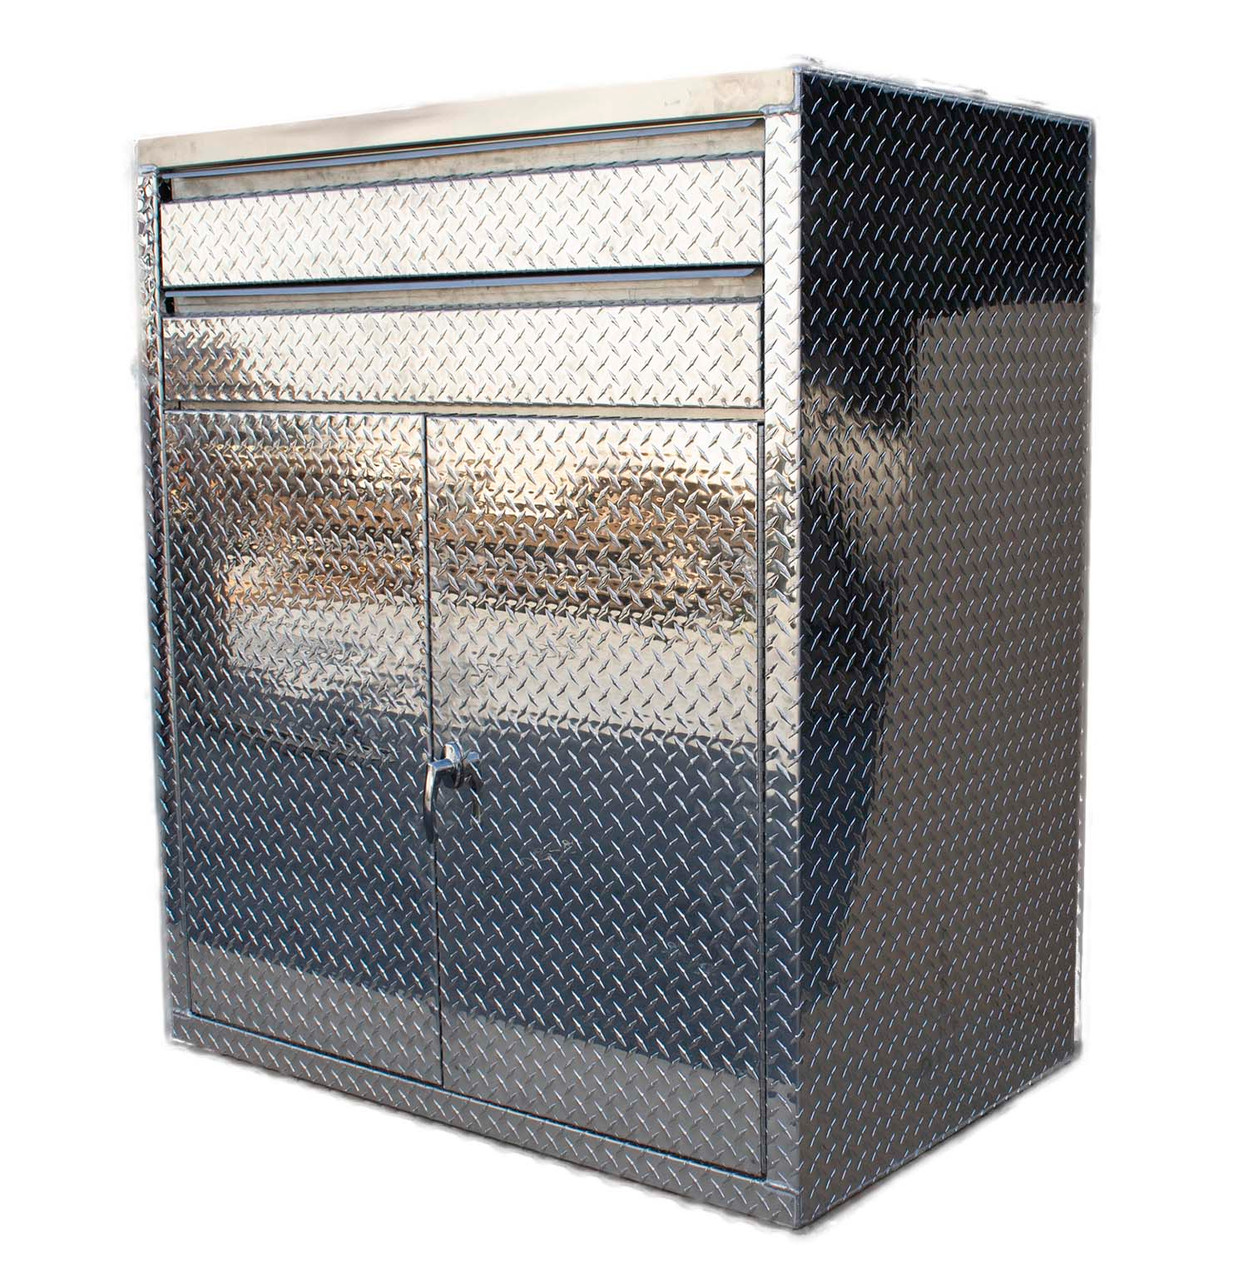 Diamond Plate High Boy Cabinet 56 in Tall